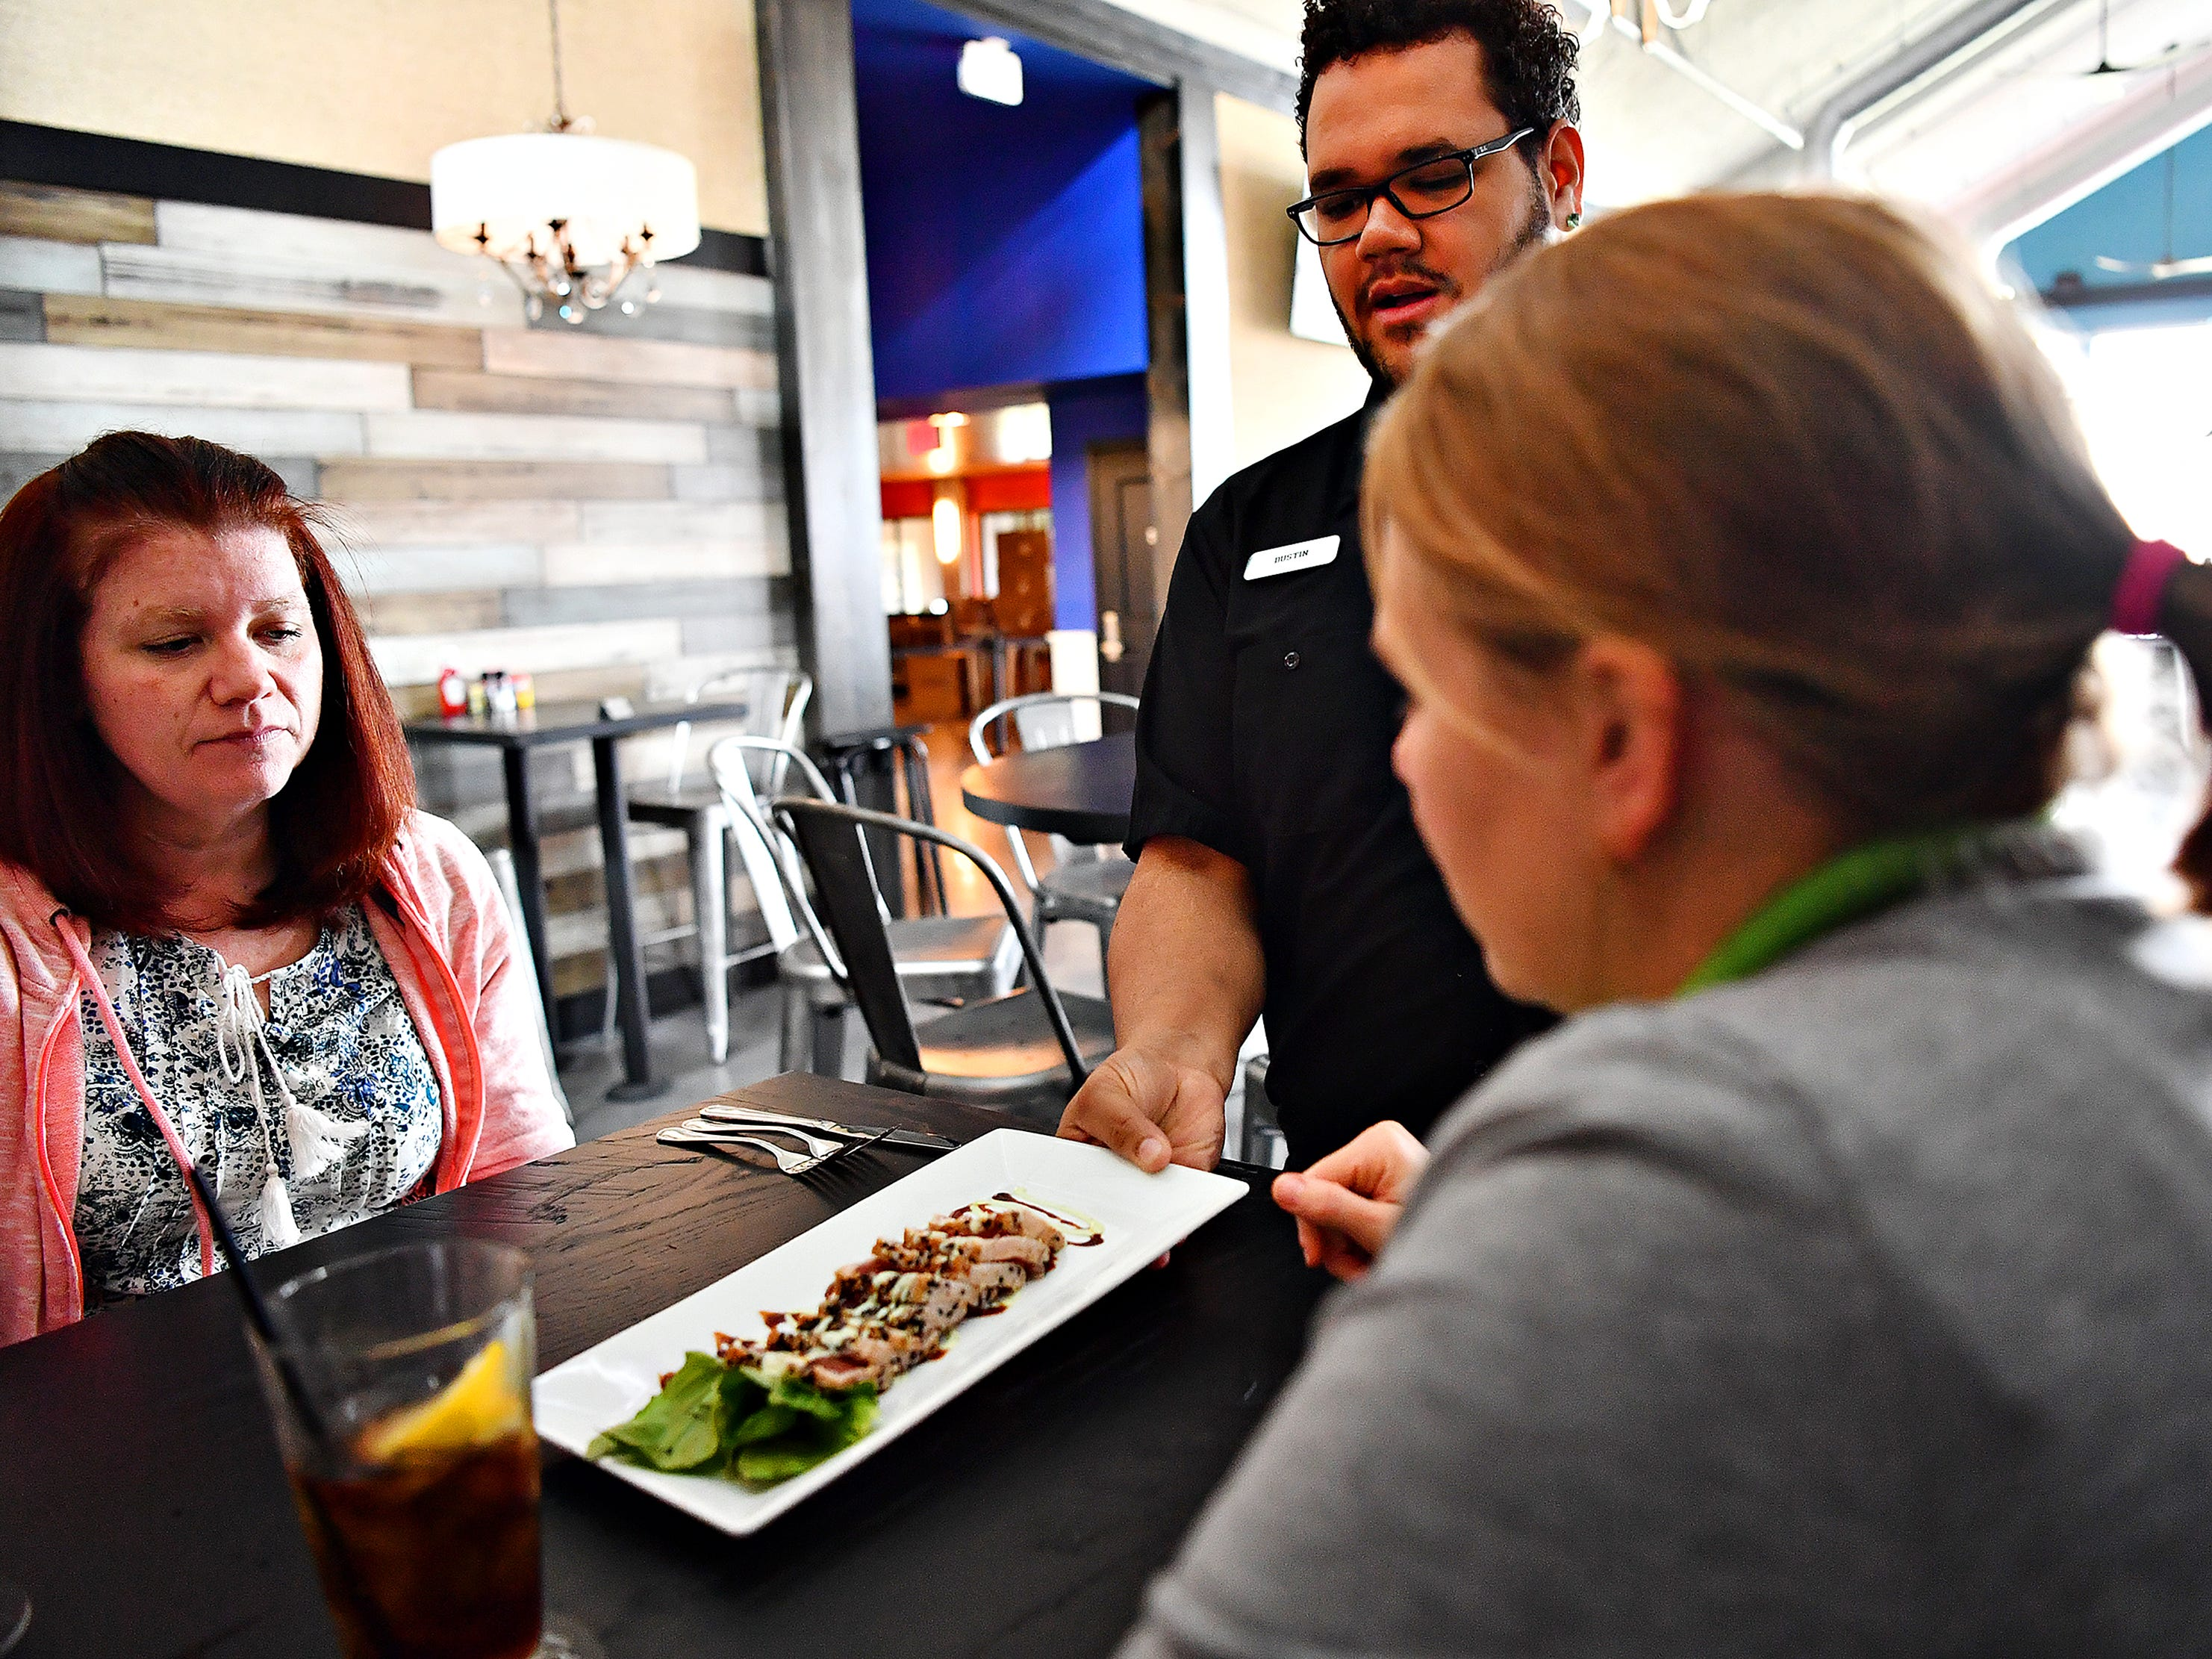 Katie Schultz, left, of Hampstead, Md., and Jaime Smetana, of Springettsbury Township, are served their appetizer of Gravlax (smoked salmon) by Server Dustin Rhoades, while dining for lunch at White Rose at Bridgewater, which overlooks the Bridgewater Golf Course in York Township, Friday, April 12, 2019. Dawn J. Sagert photo